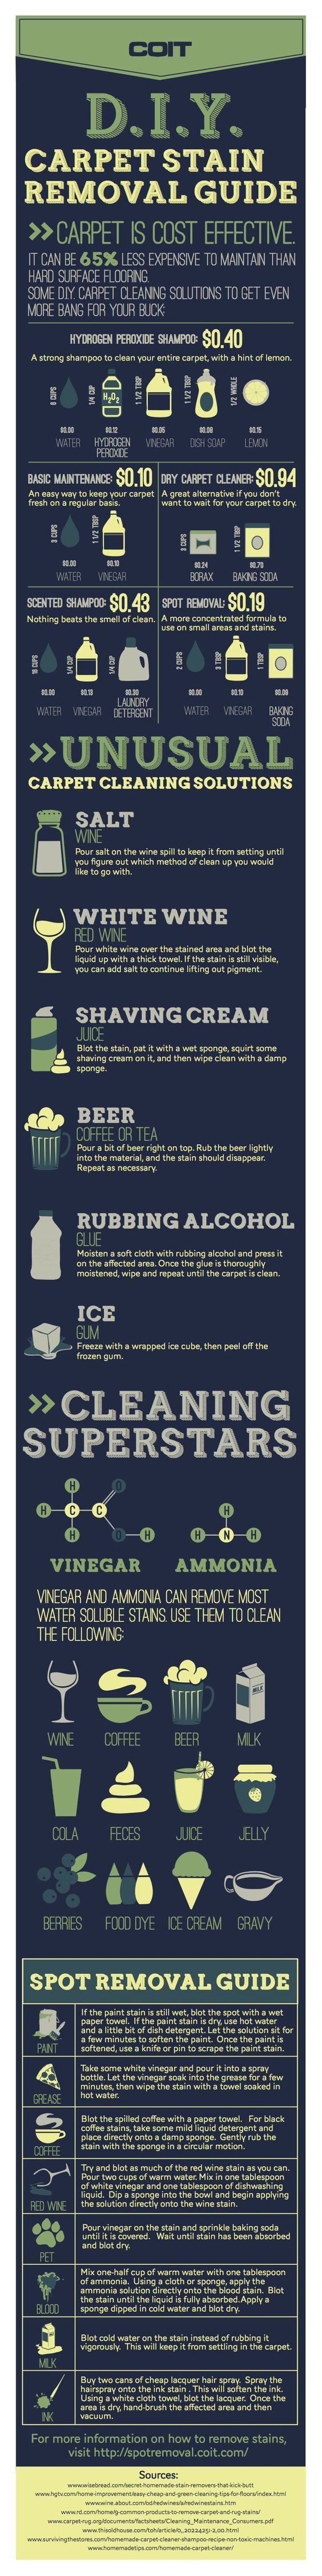 Many people are wondering which is more cost effective, carpet or hard surface flooring cleaning recipes and solutions? This DIY Carpet Stain Cleaner includes Recipes, Shampoo, Machines & For Pet Stains Infographic explains it all..